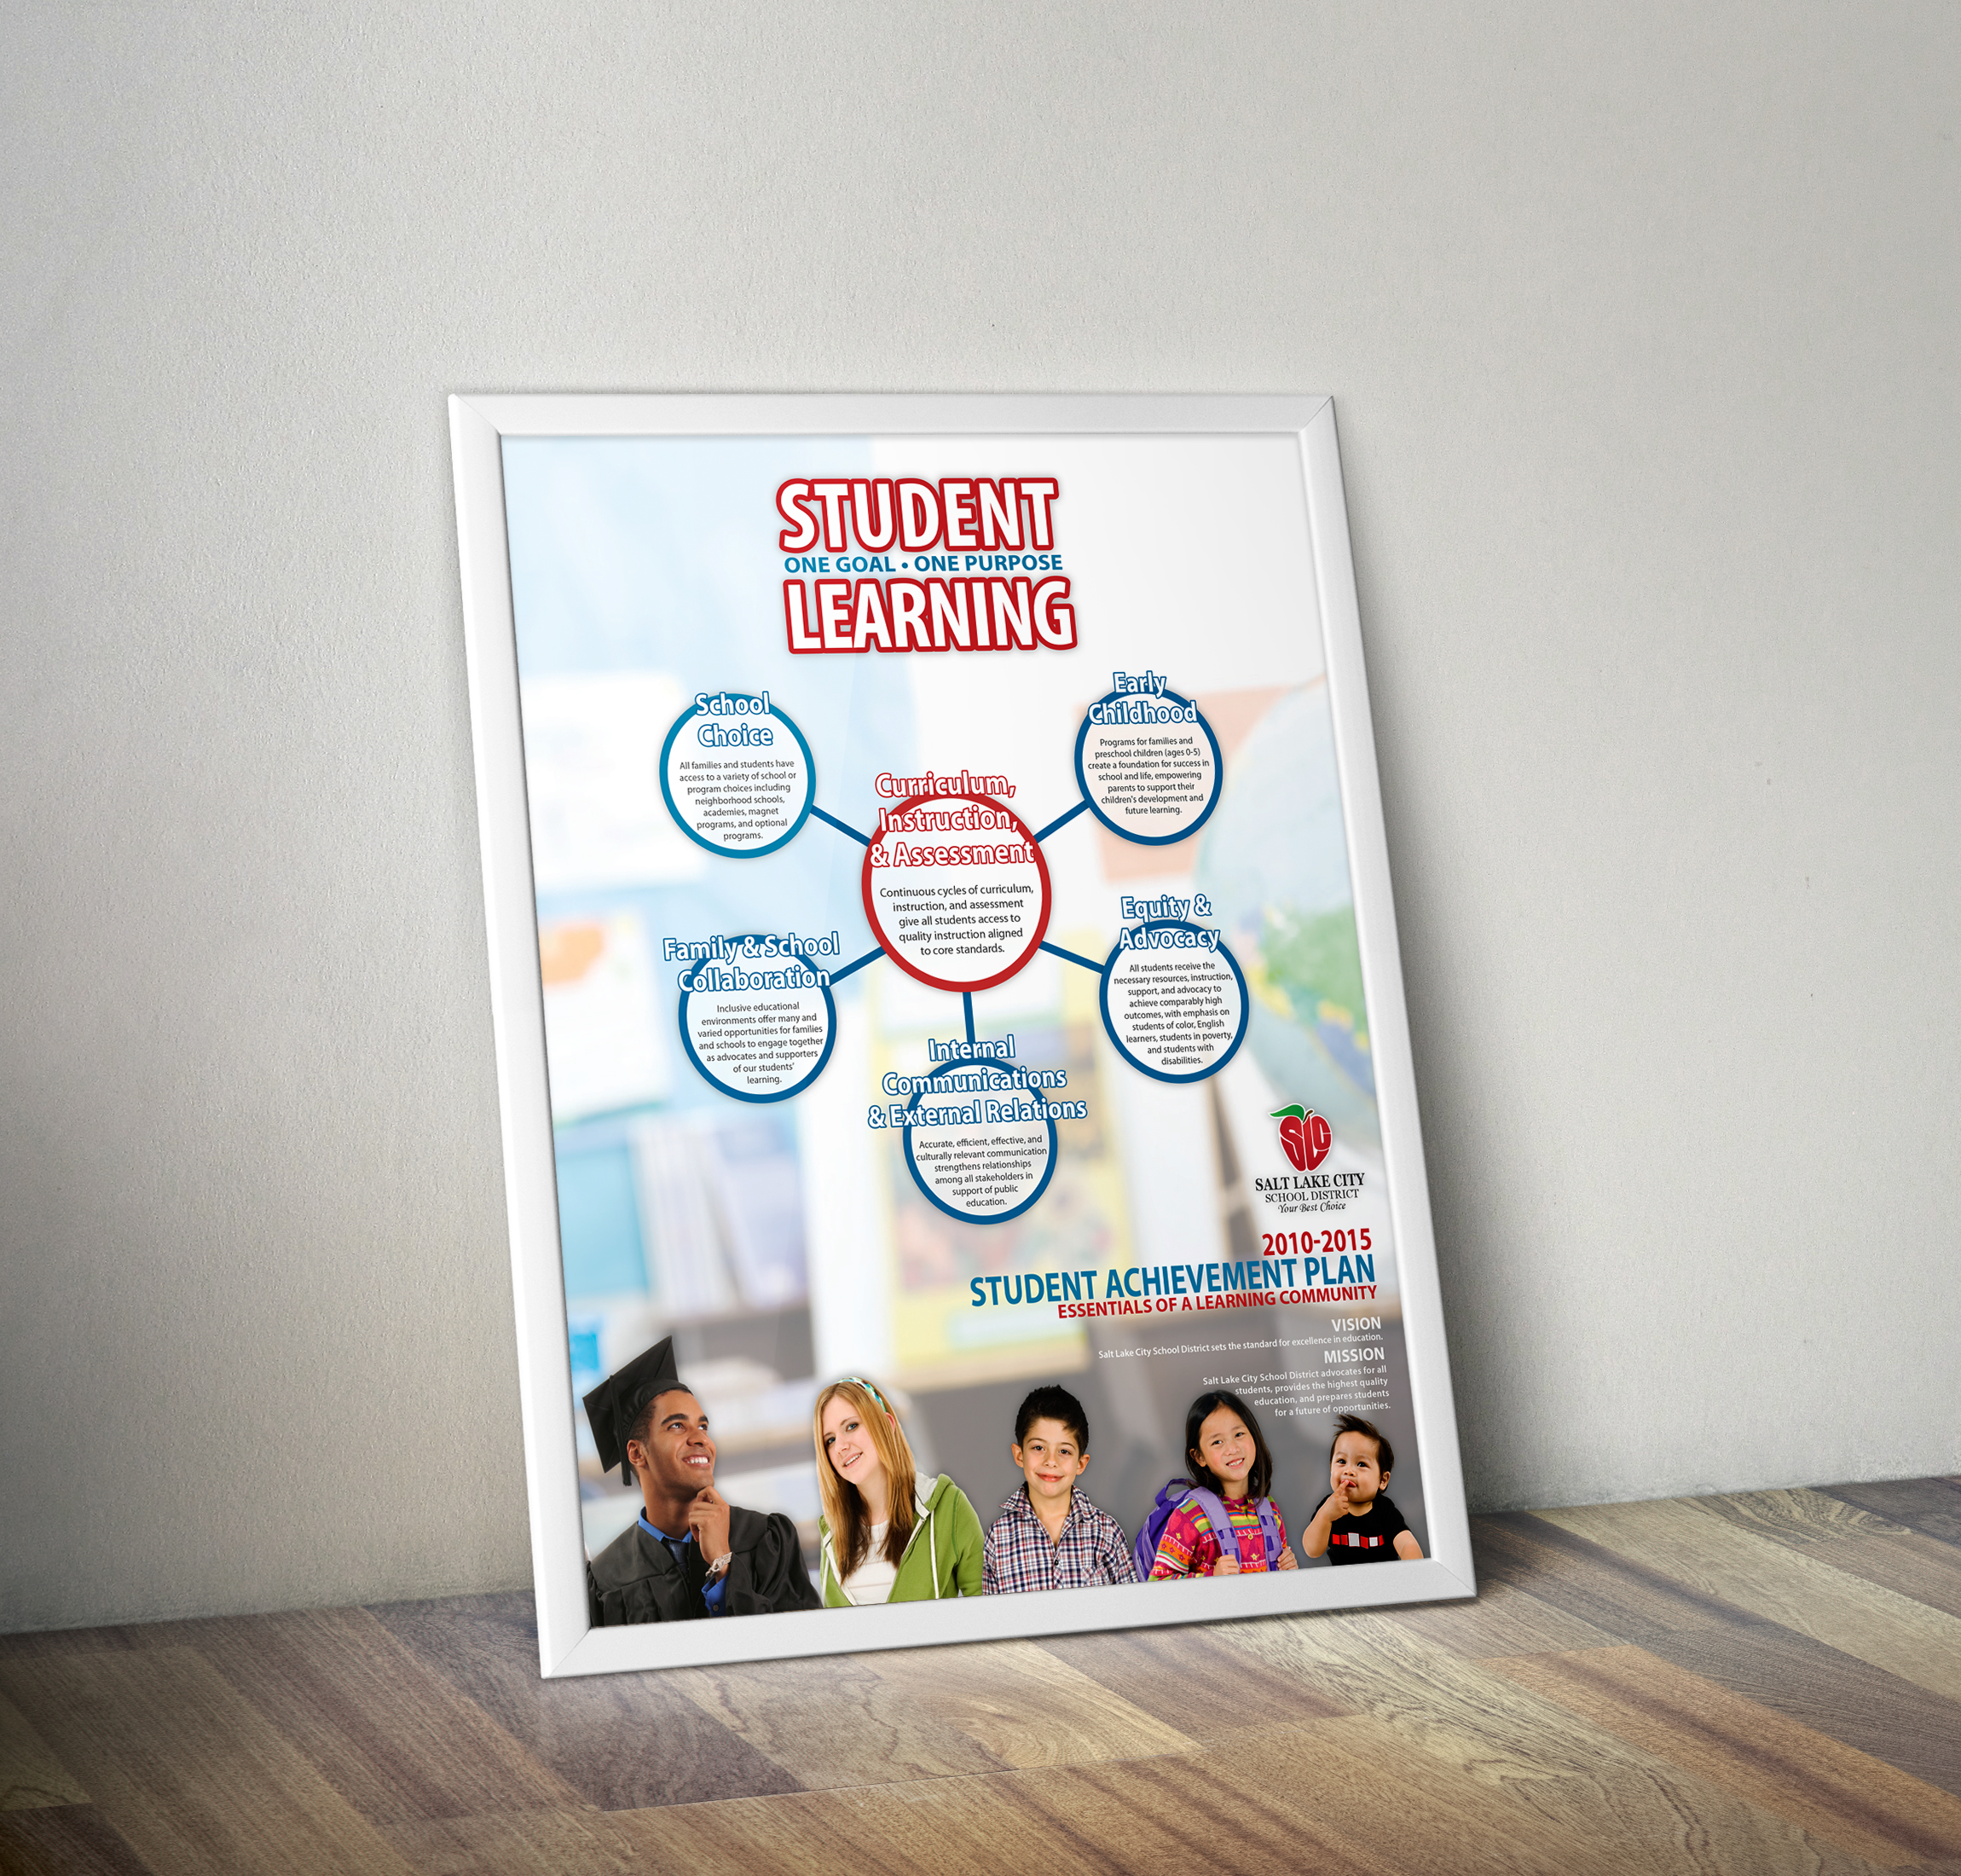 Salt Lake City Schools Flyers, Posters, and Signage